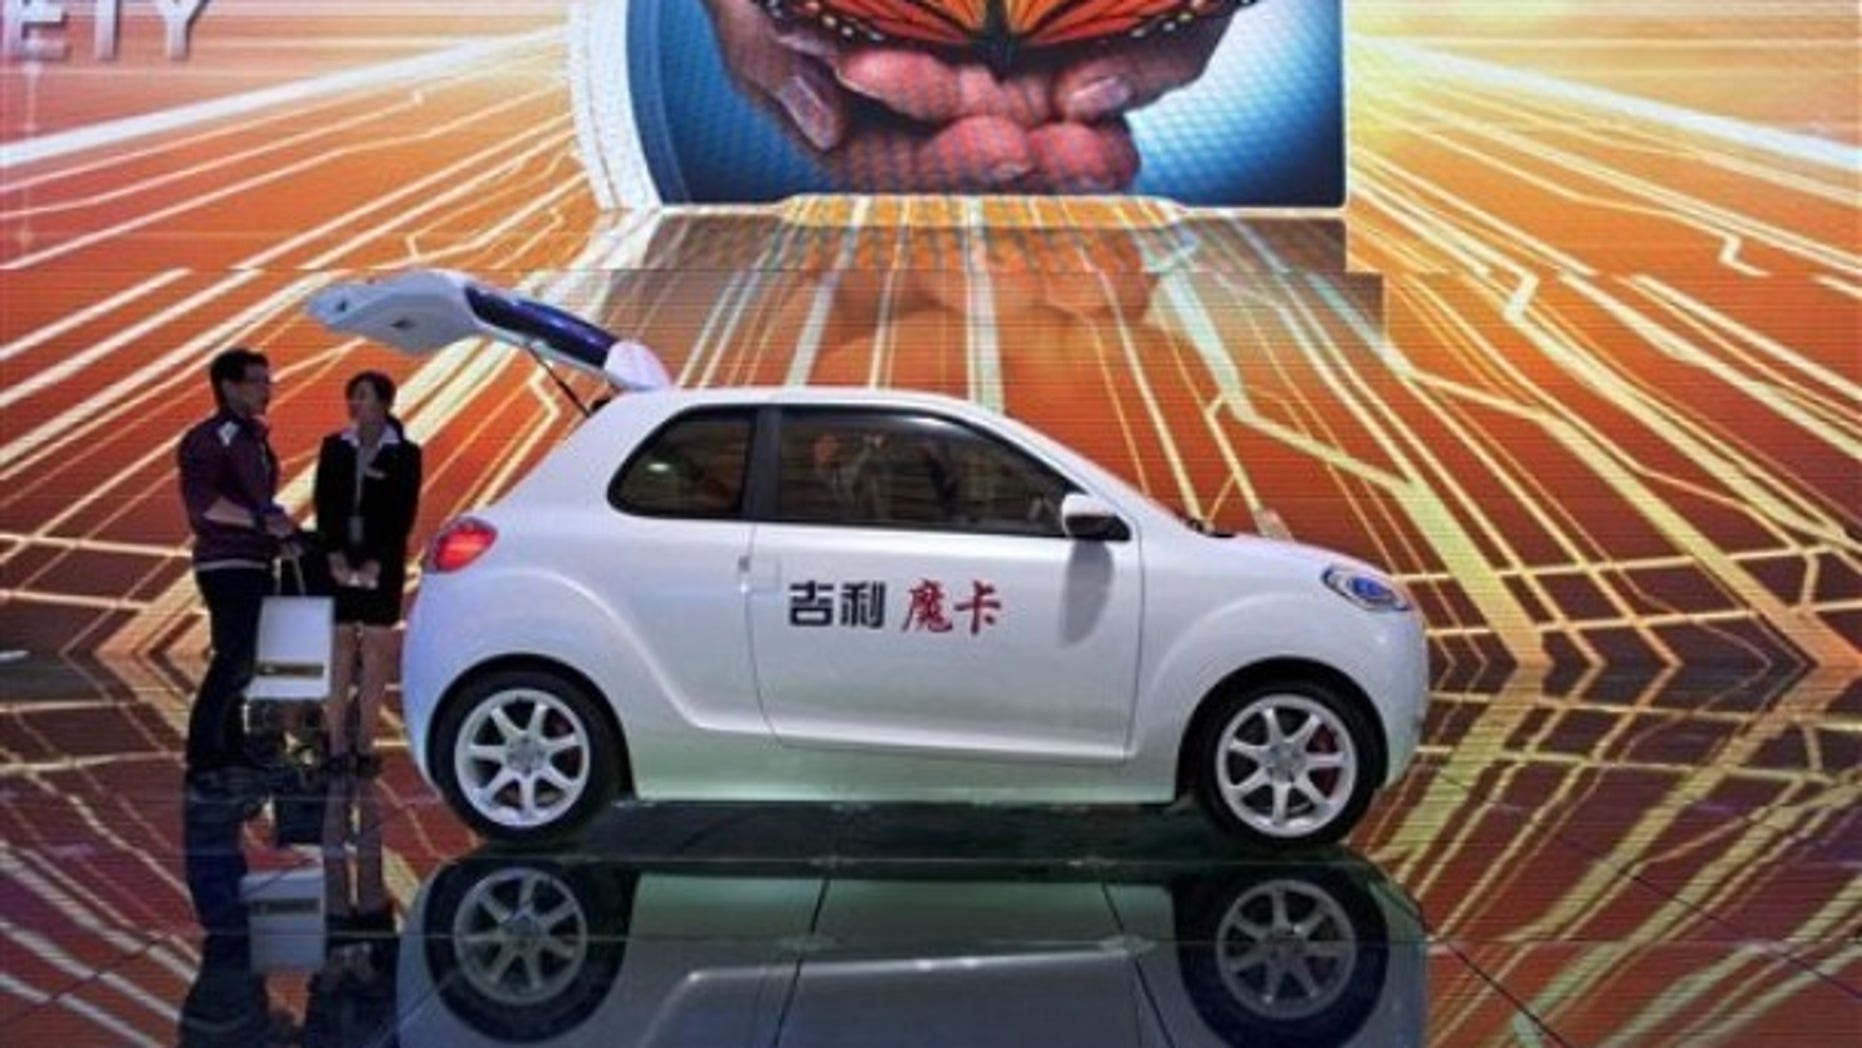 A woman chats with a visitor next to a Geely McCar displayed at the 14th Shanghai International Automobile Industry Exhibition in Shanghai, China Wednesday, April 20, 2011.